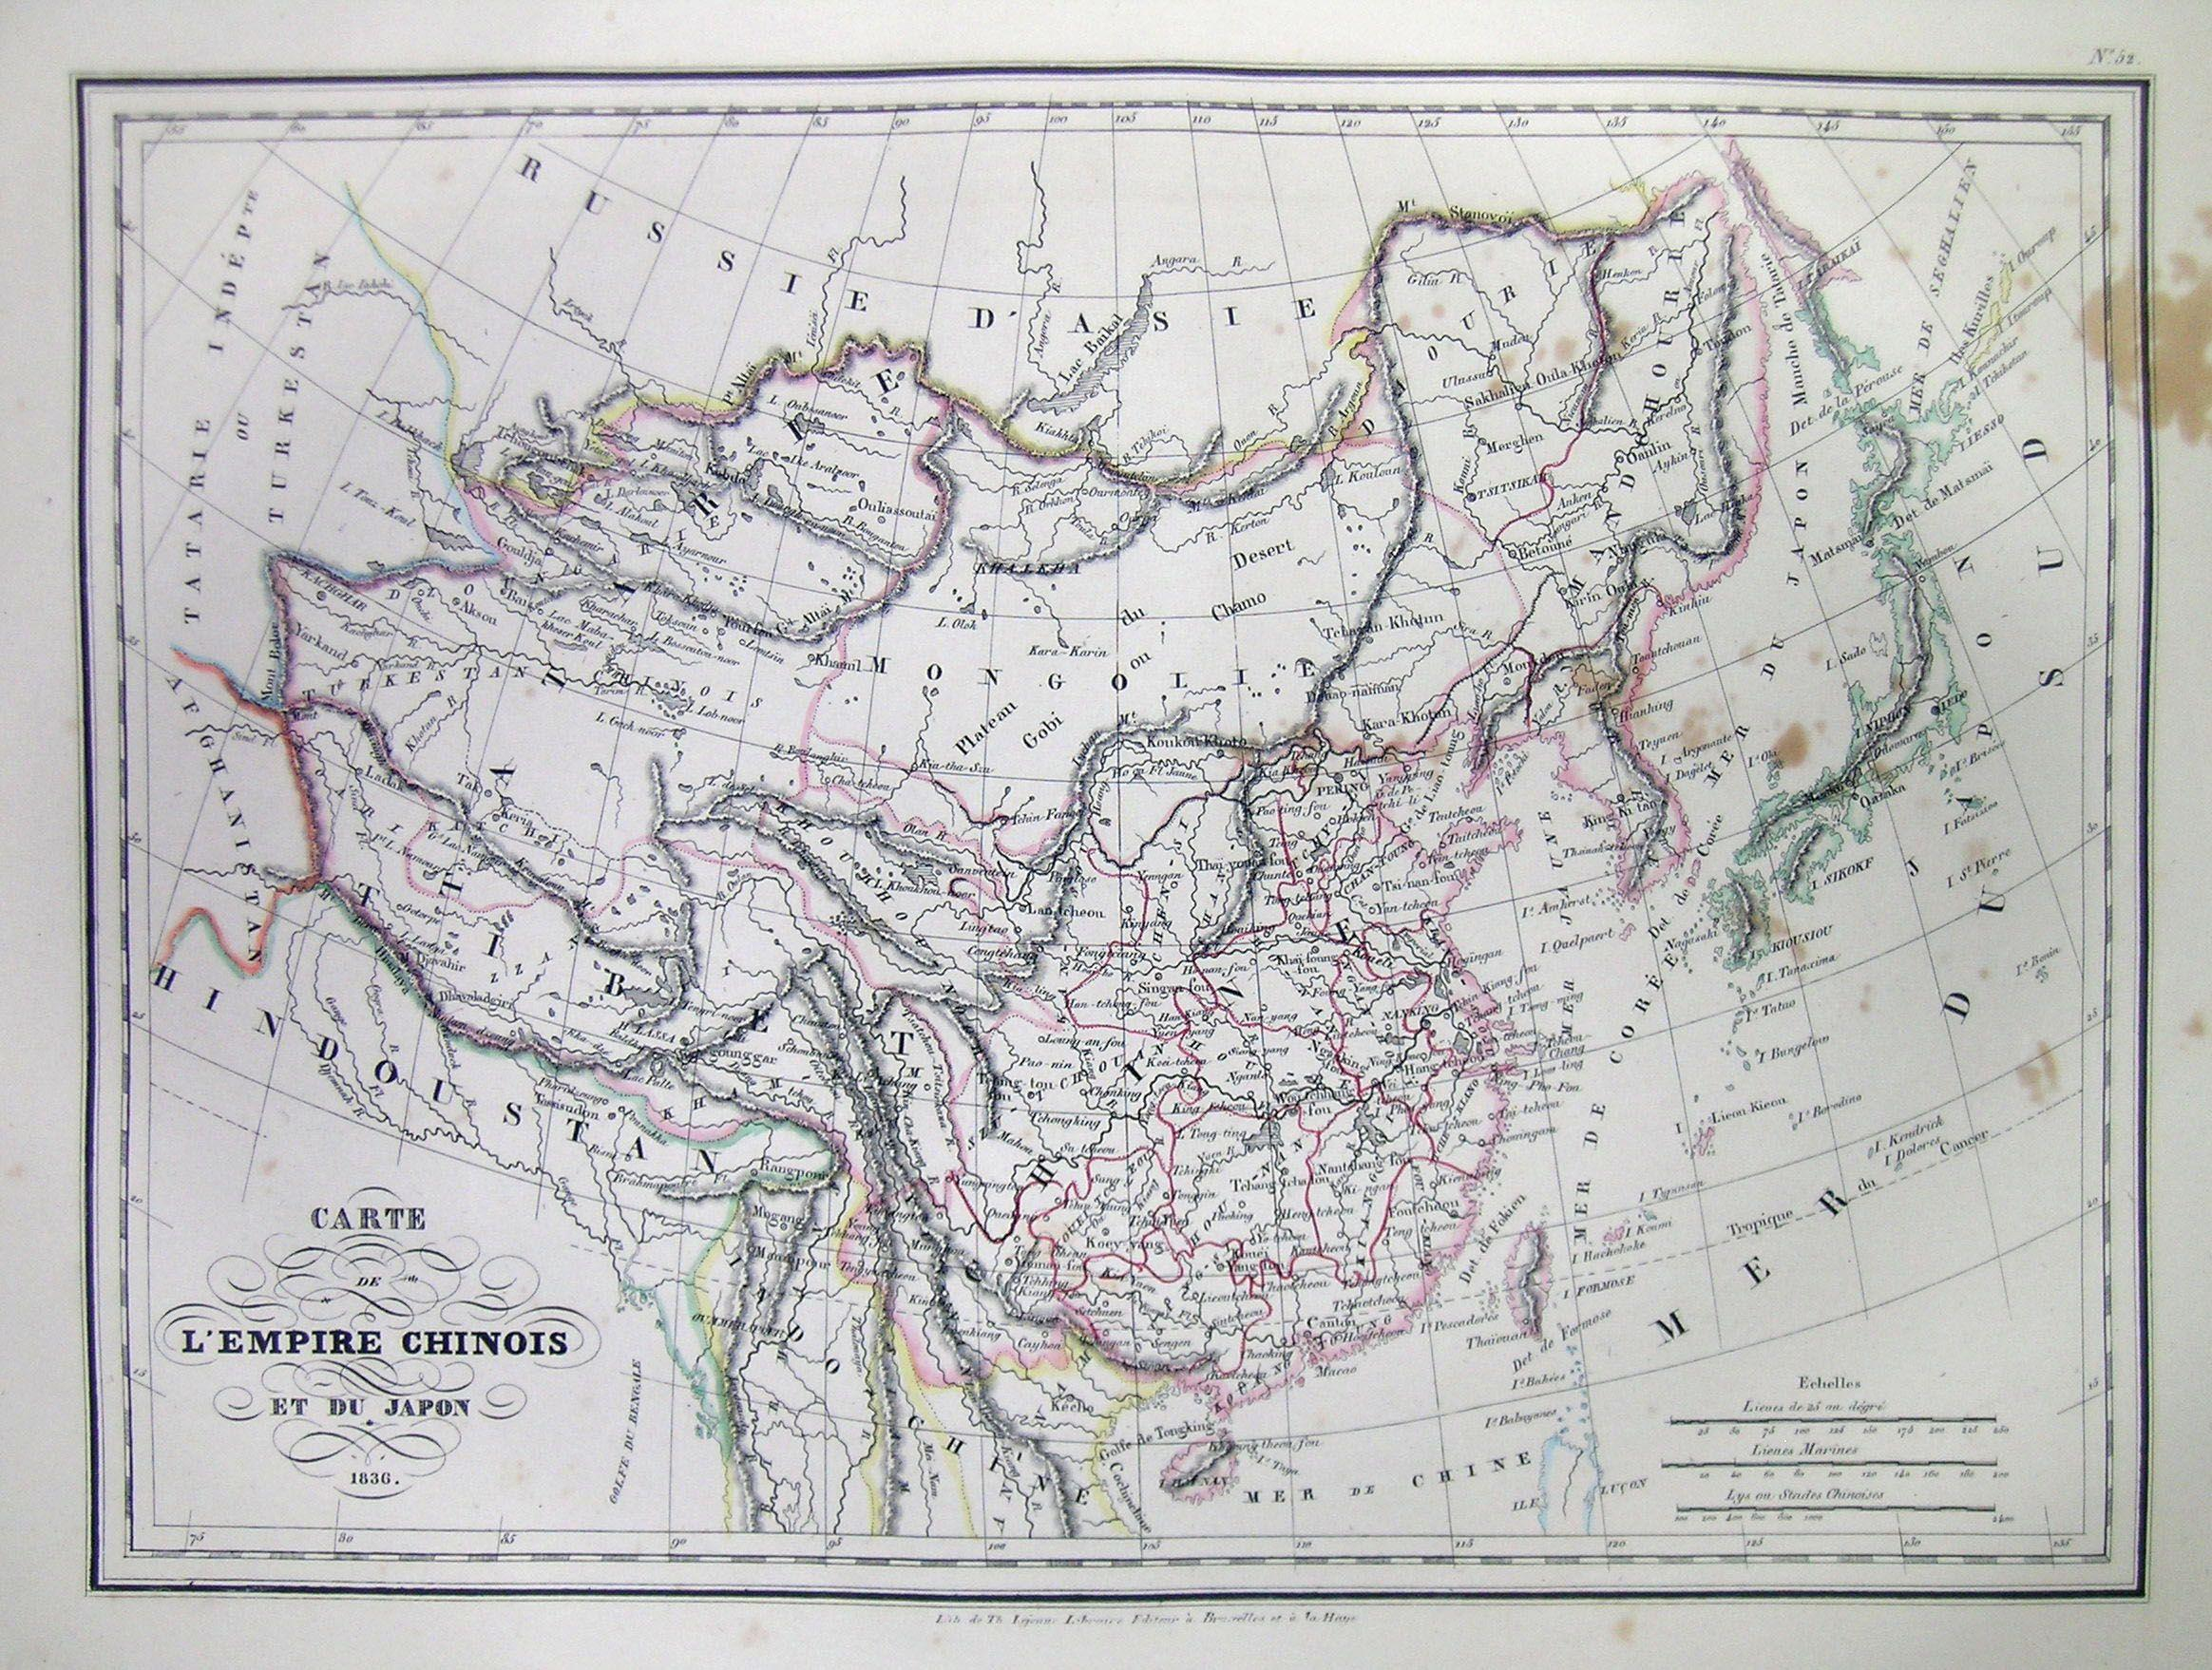 china provinces map with File 1837 Malte Brun Map Of China And Japan   Geographicus   China Mb 1837 on Top Fifteen Wine Producing Countries moreover Index likewise 46720 additionally Anhui Province 2 furthermore 373376625329006232.